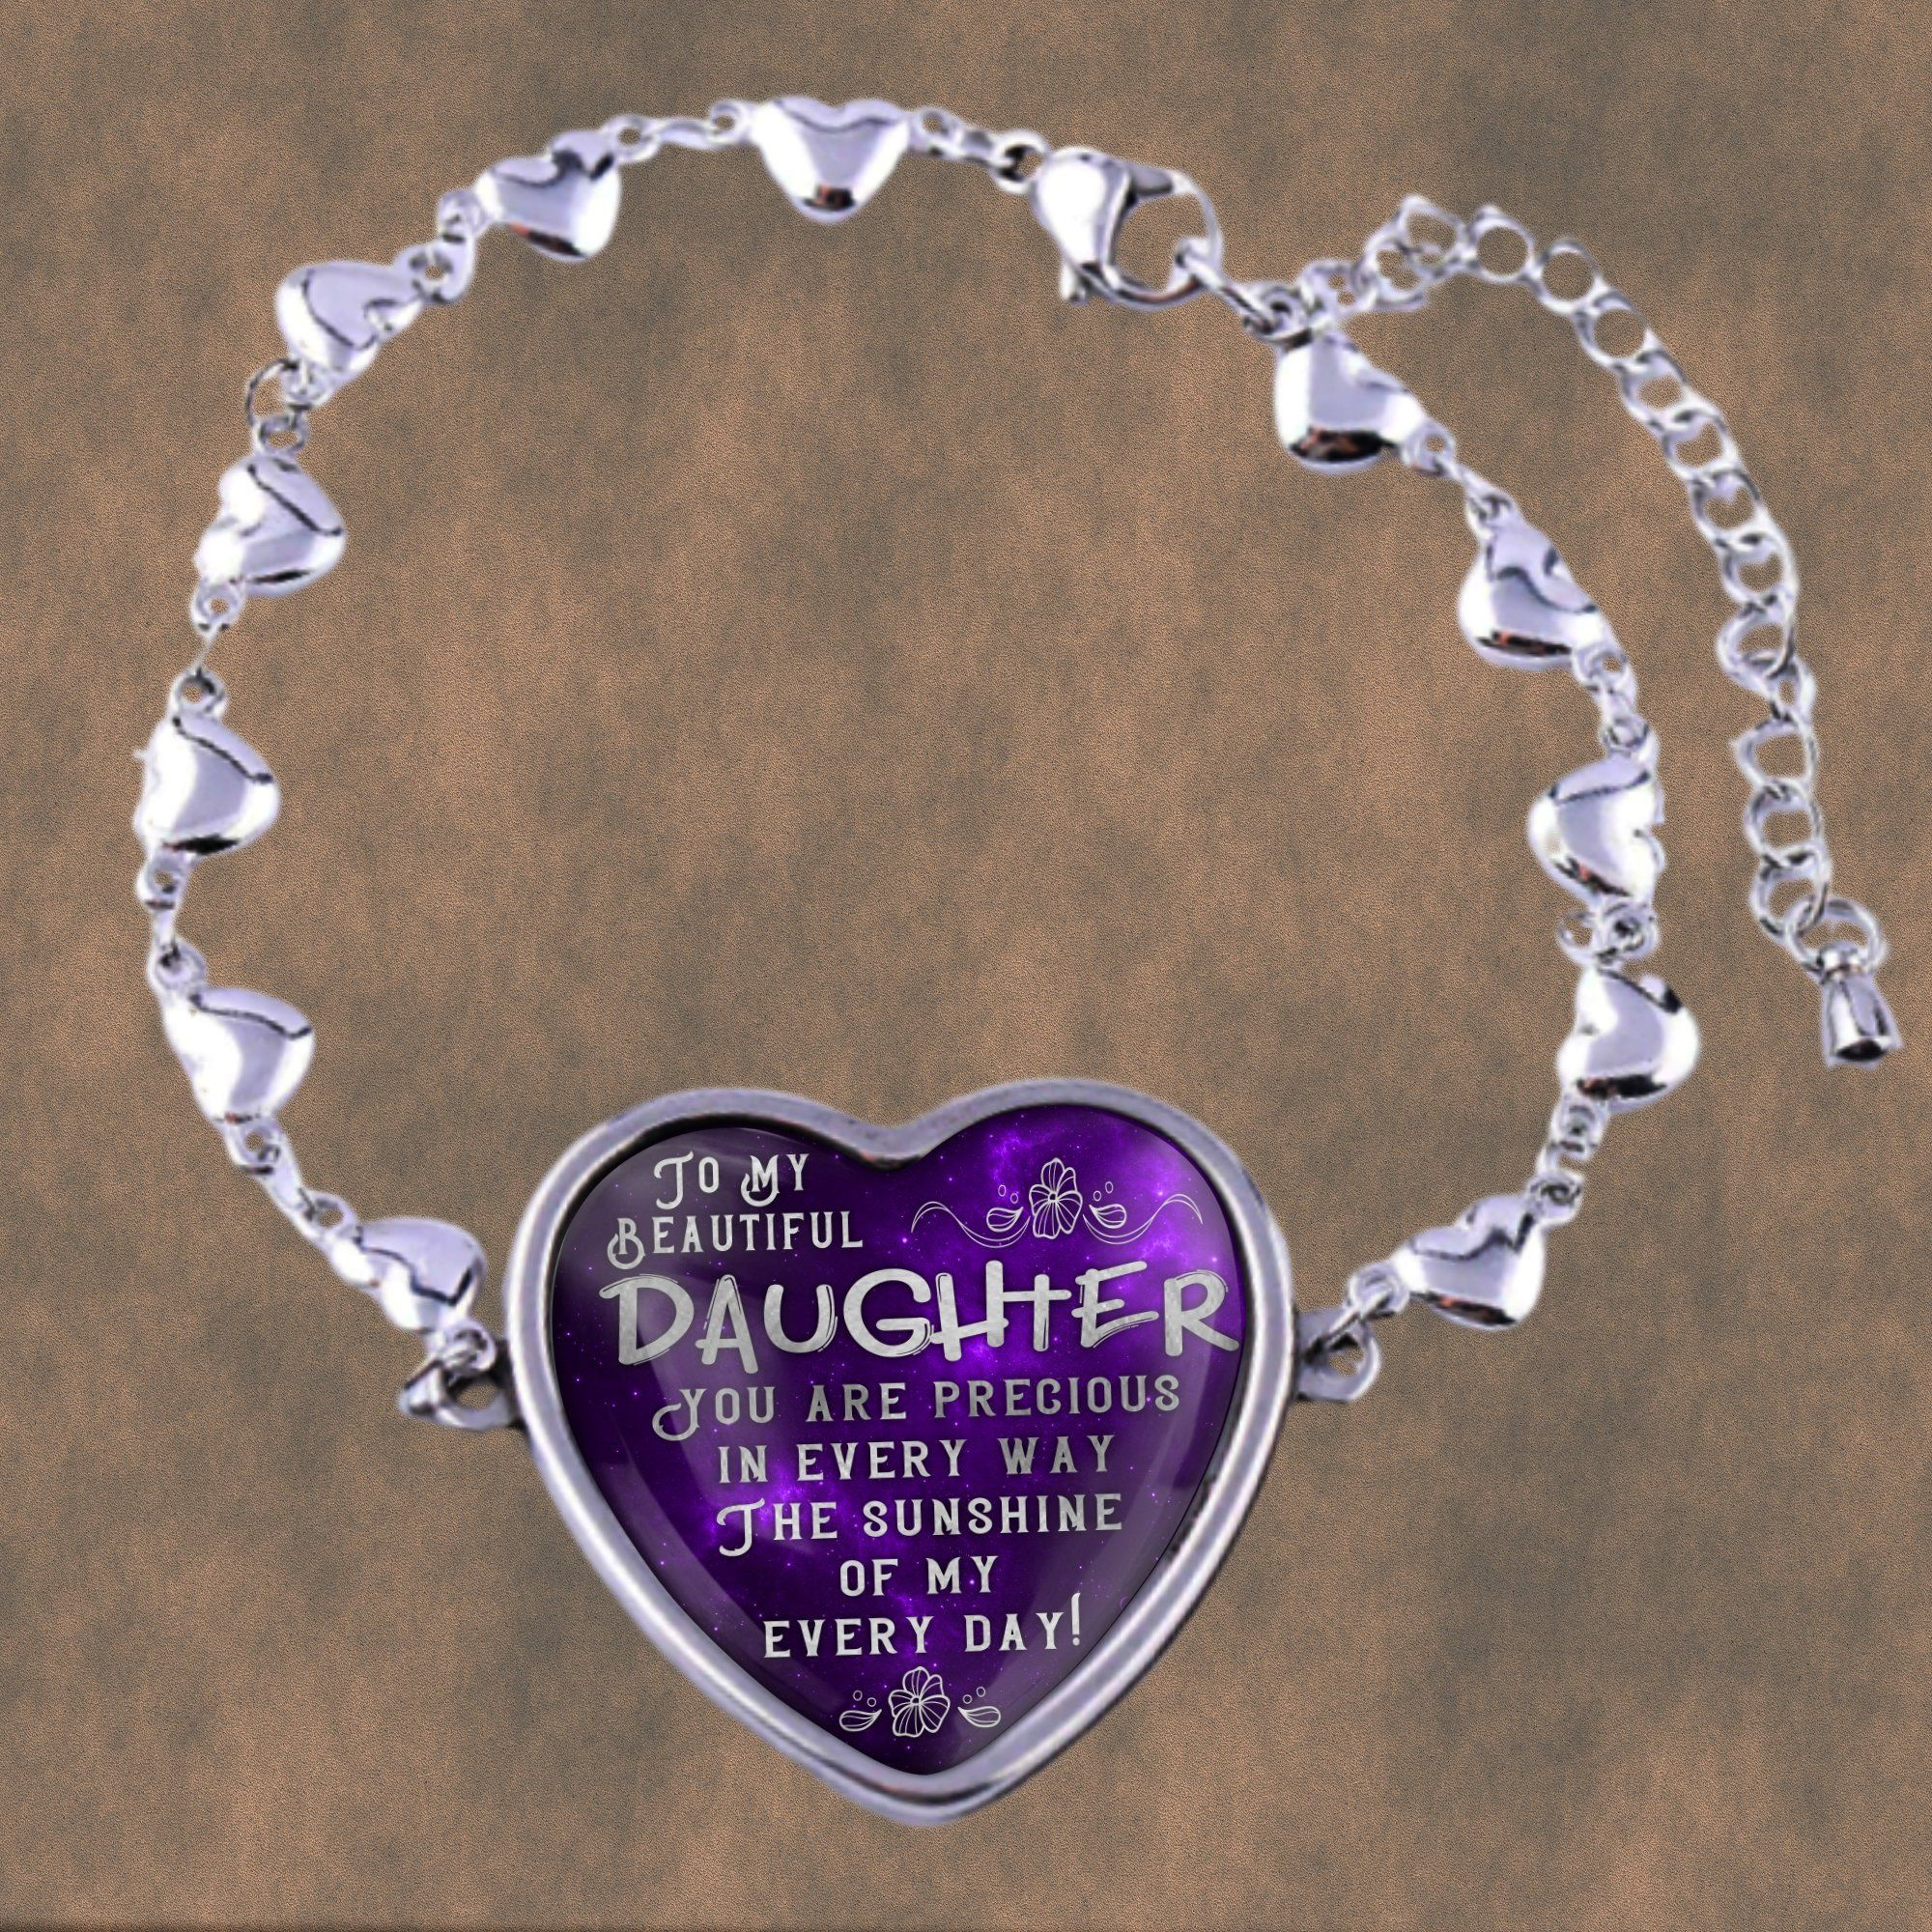 To my beautiful daughter, you are precious in every way, stainless steel heart bracelet  #design #art #giftguide #gifts #handmade #birthday #gift #designtimegnc #giftideas #gifting